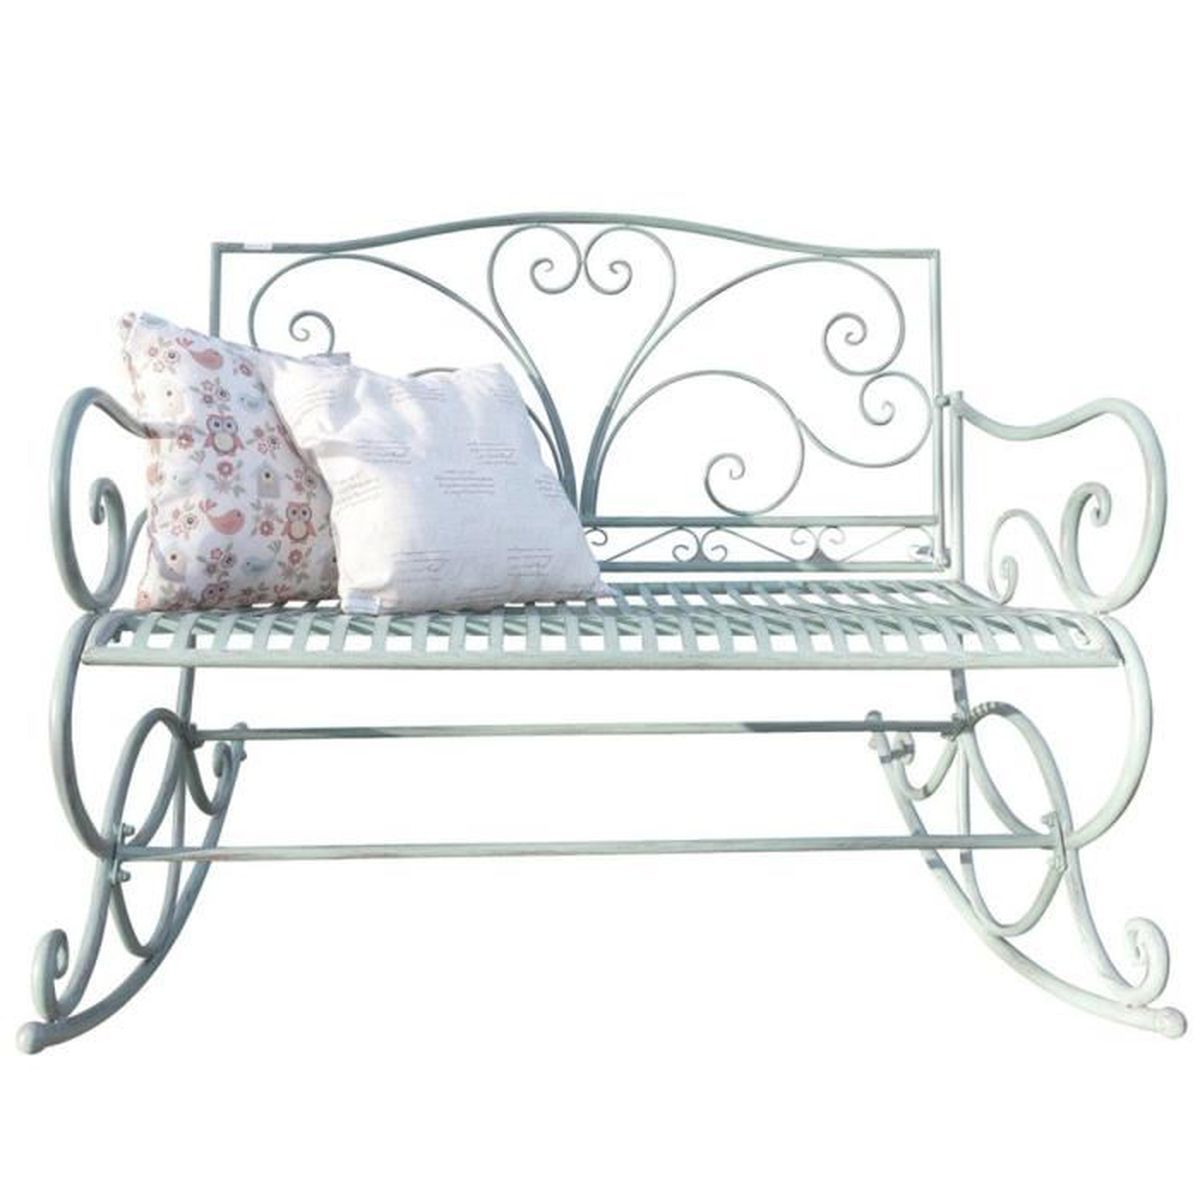 Blanc fer forge achat vente blanc fer forge pas cher cdiscount - Banc fer forge blanc ...